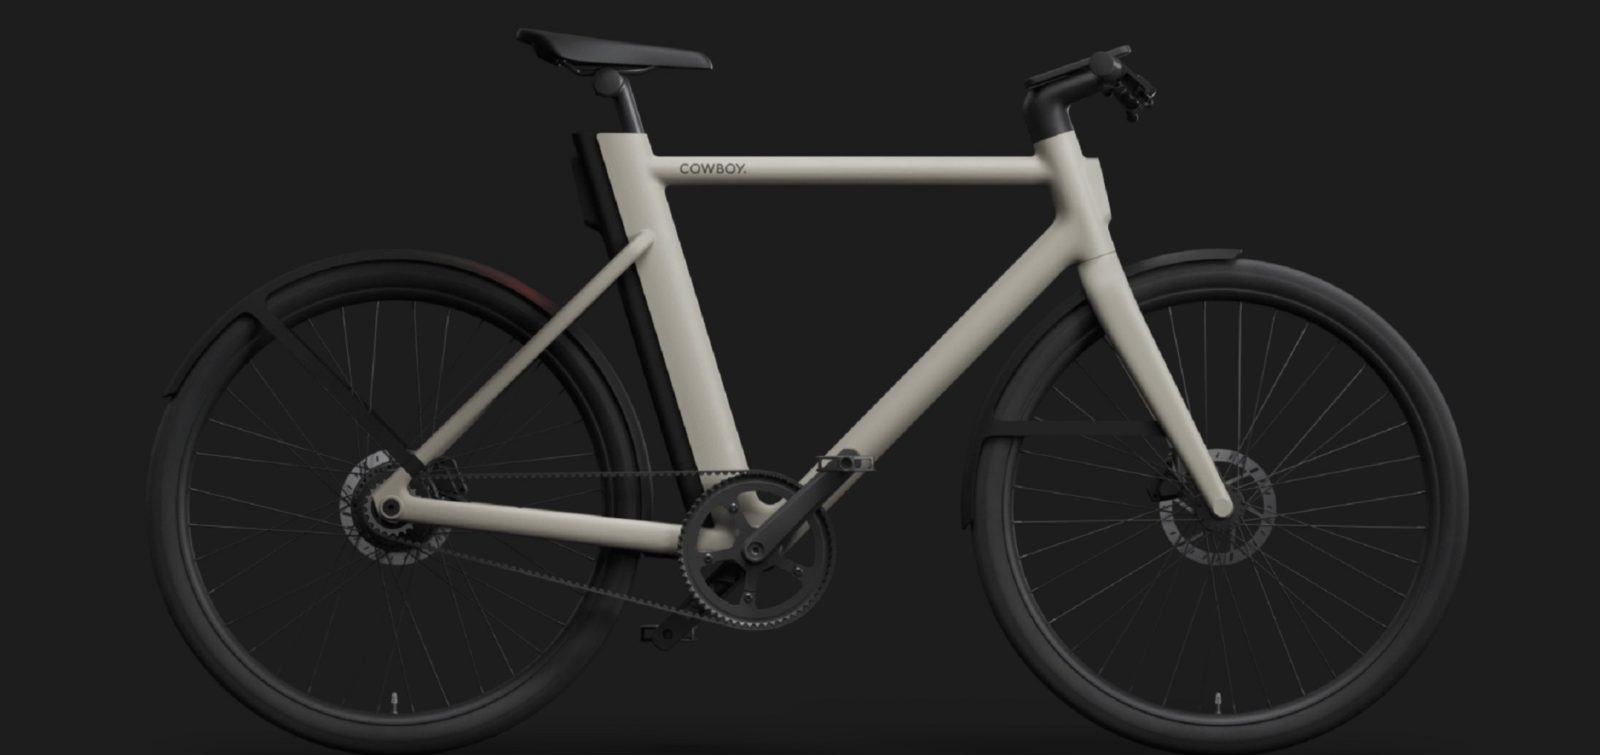 a-european-cowboy-is-coming-to-the-us.-stylish-c4-e-bike-is-minimalist-but-smart